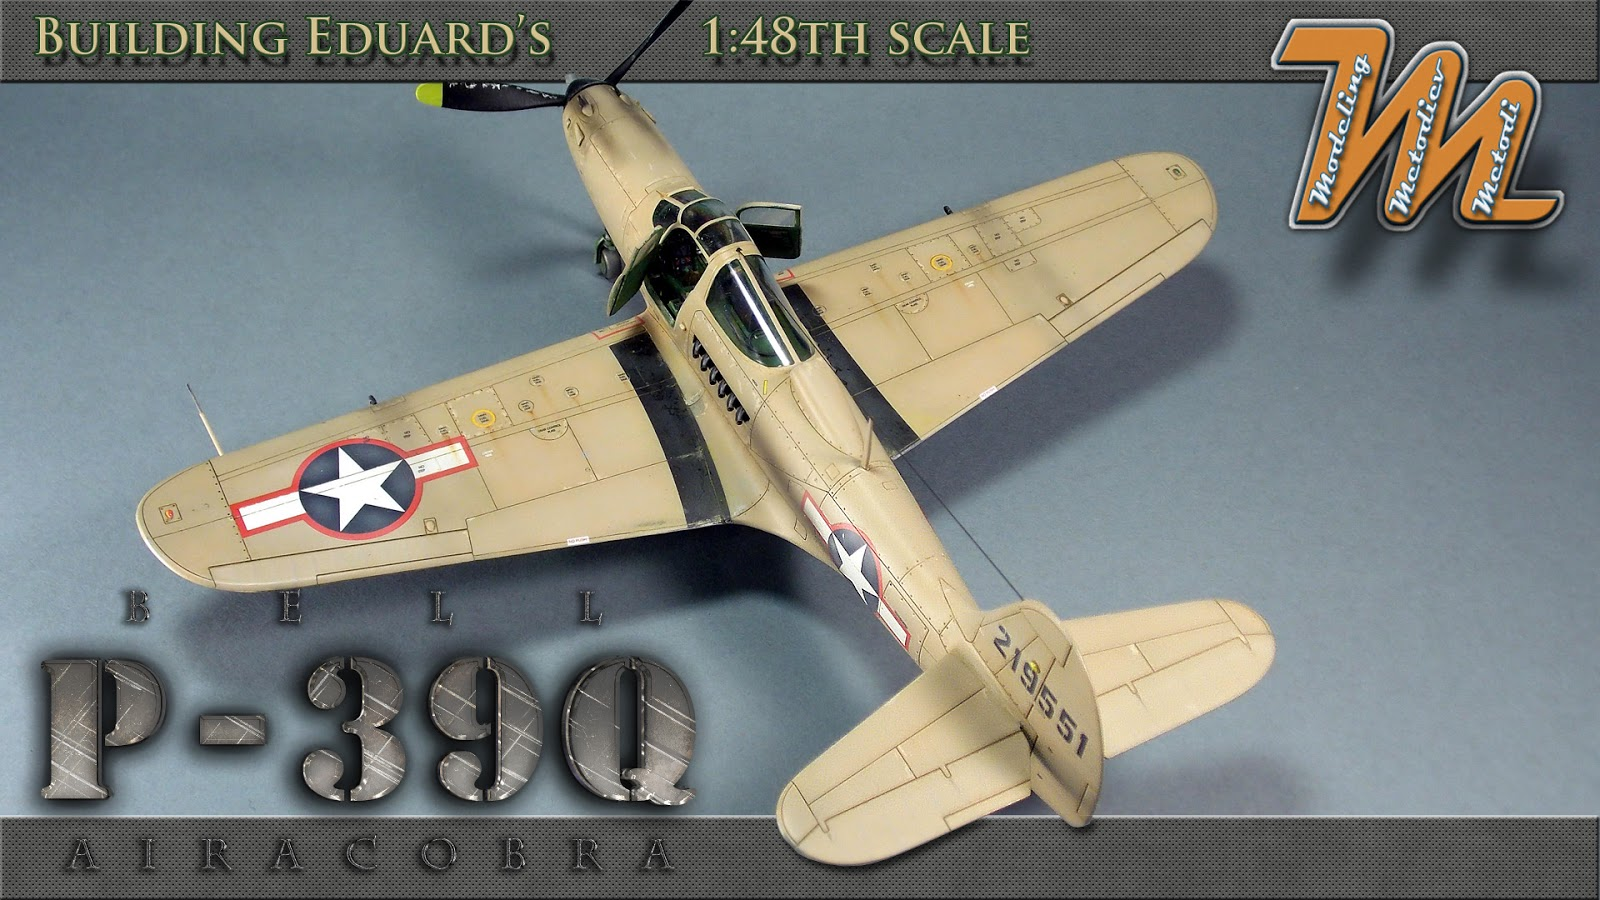 Bell P39 Q Airacobra, USAF, scale model